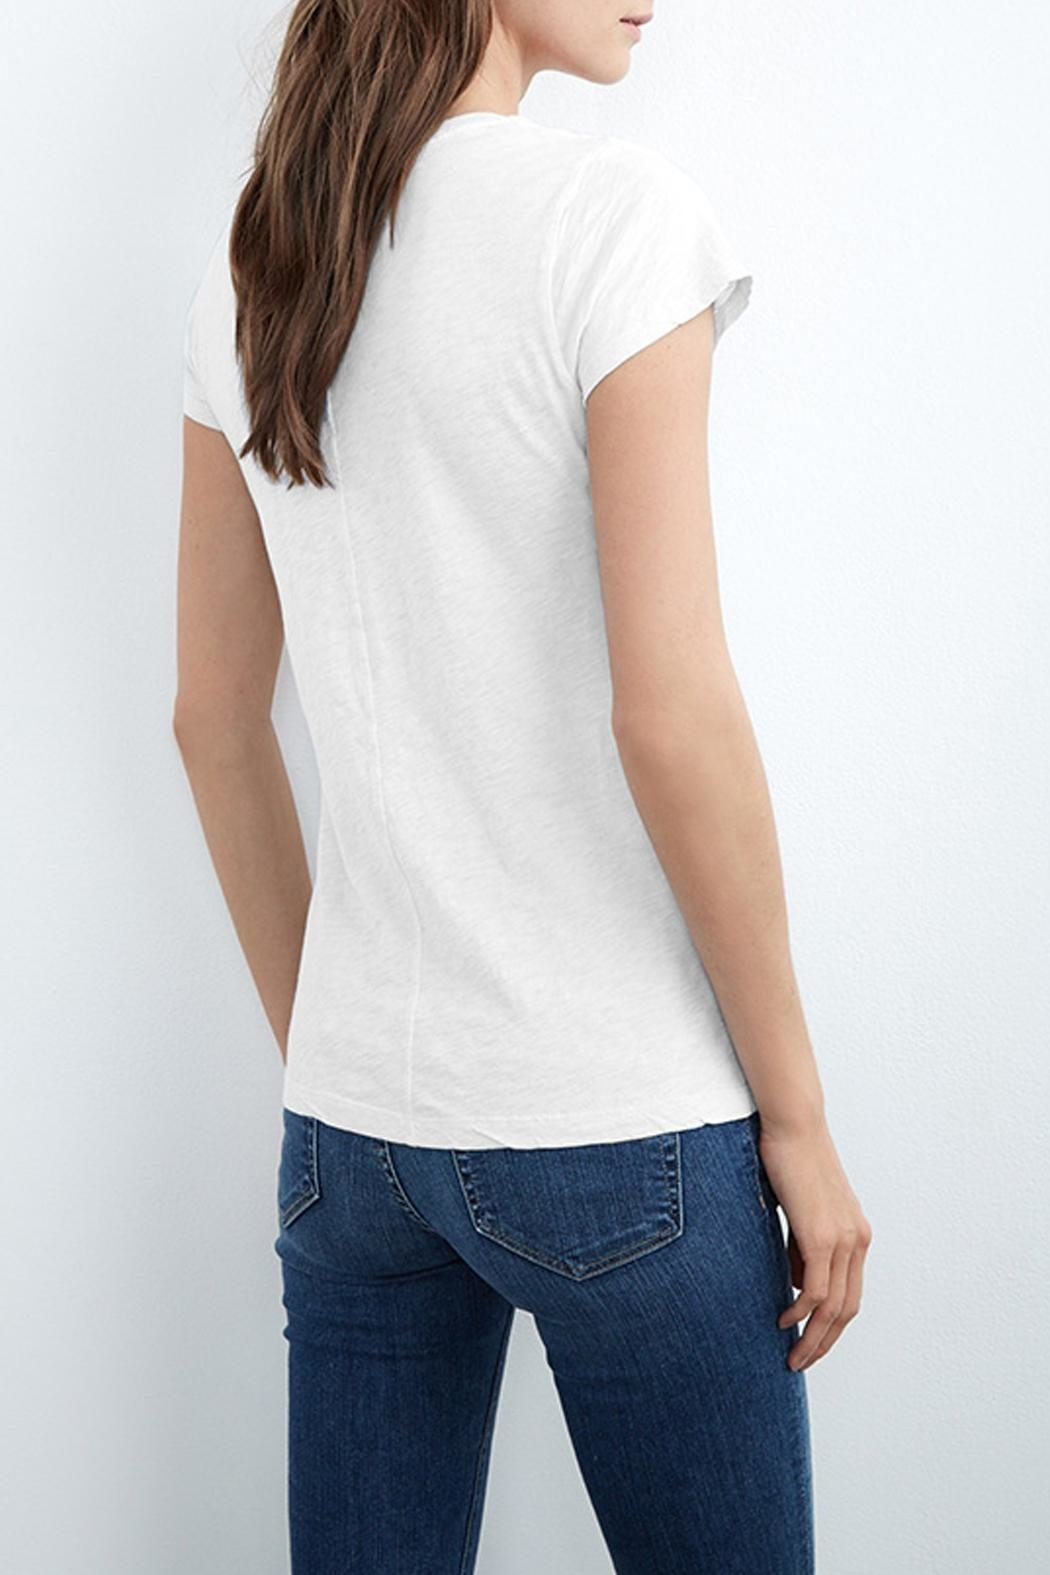 Velvet Odelia Cotton Crew Neck Tee - Front Full Image